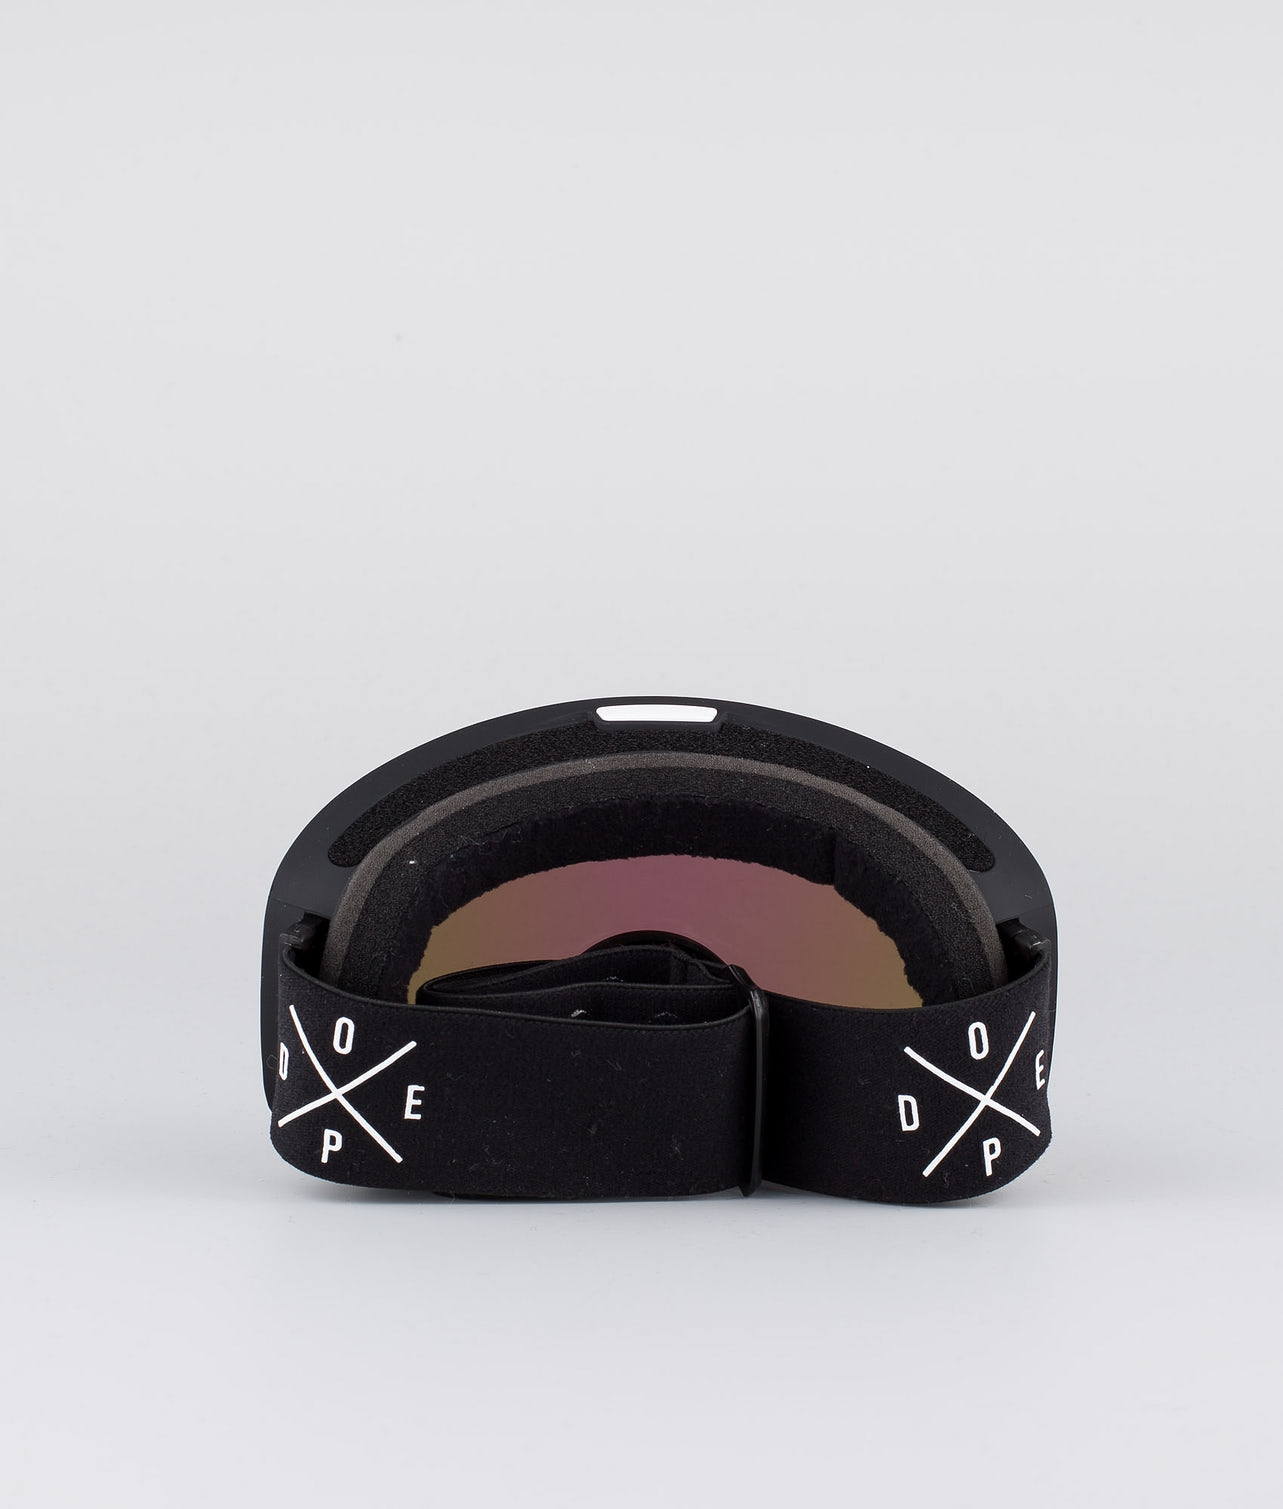 Buy Flush 2X-UP Ski Goggle from Dope at Ridestore.com - Always free shipping, free returns and 30 days money back guarantee